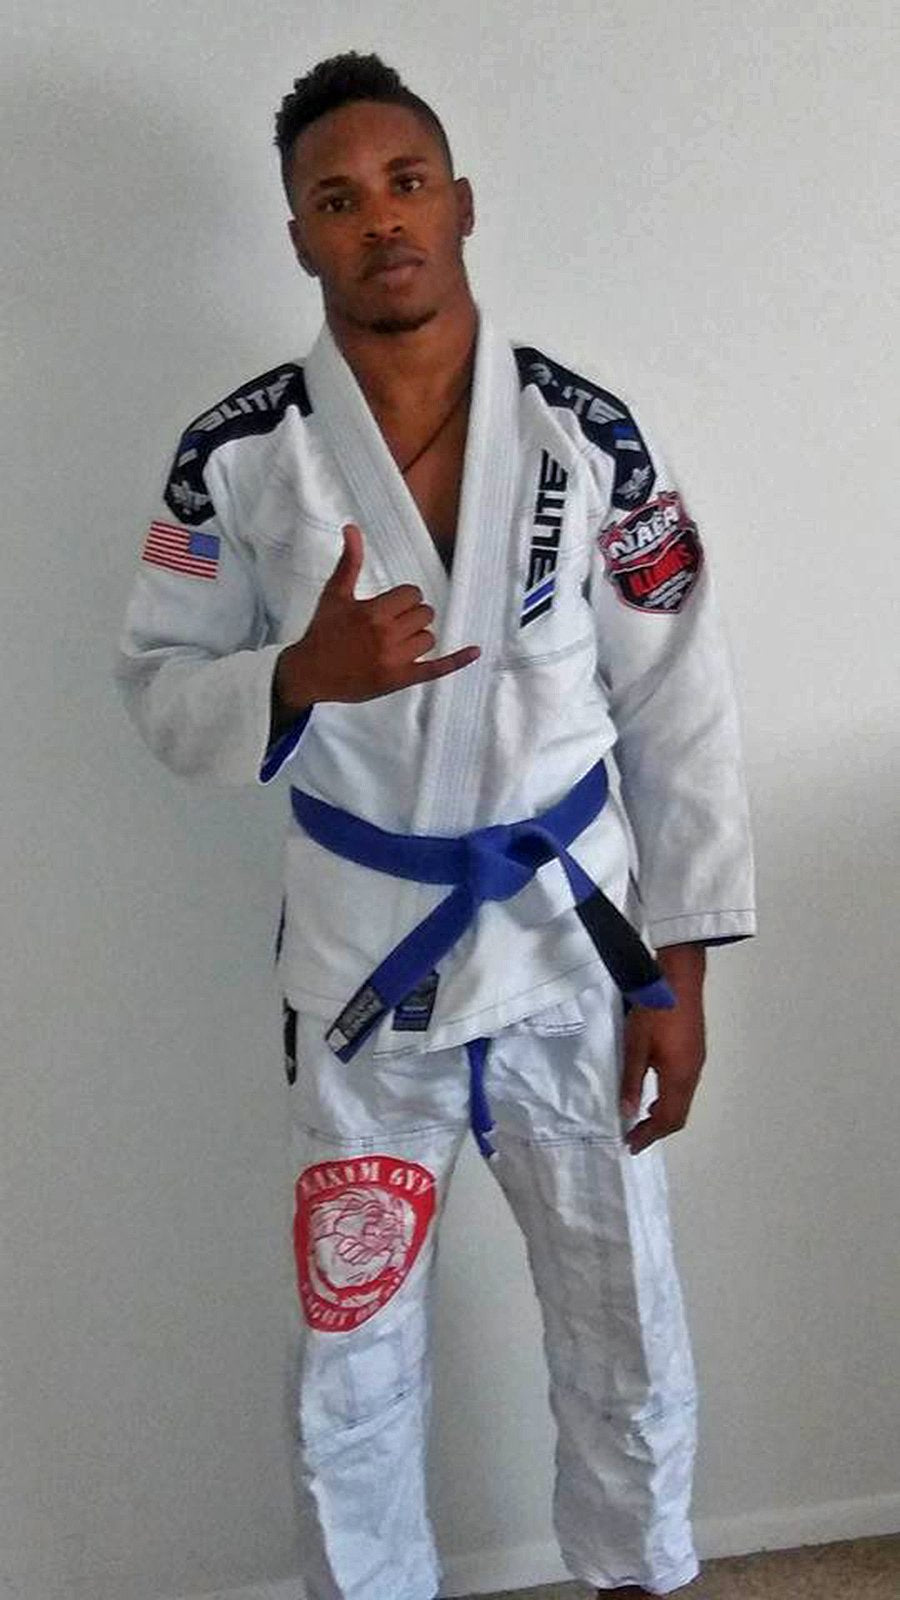 Elite Sports Team Elite Bjj Fighter Maltese Rico Tally  Image4